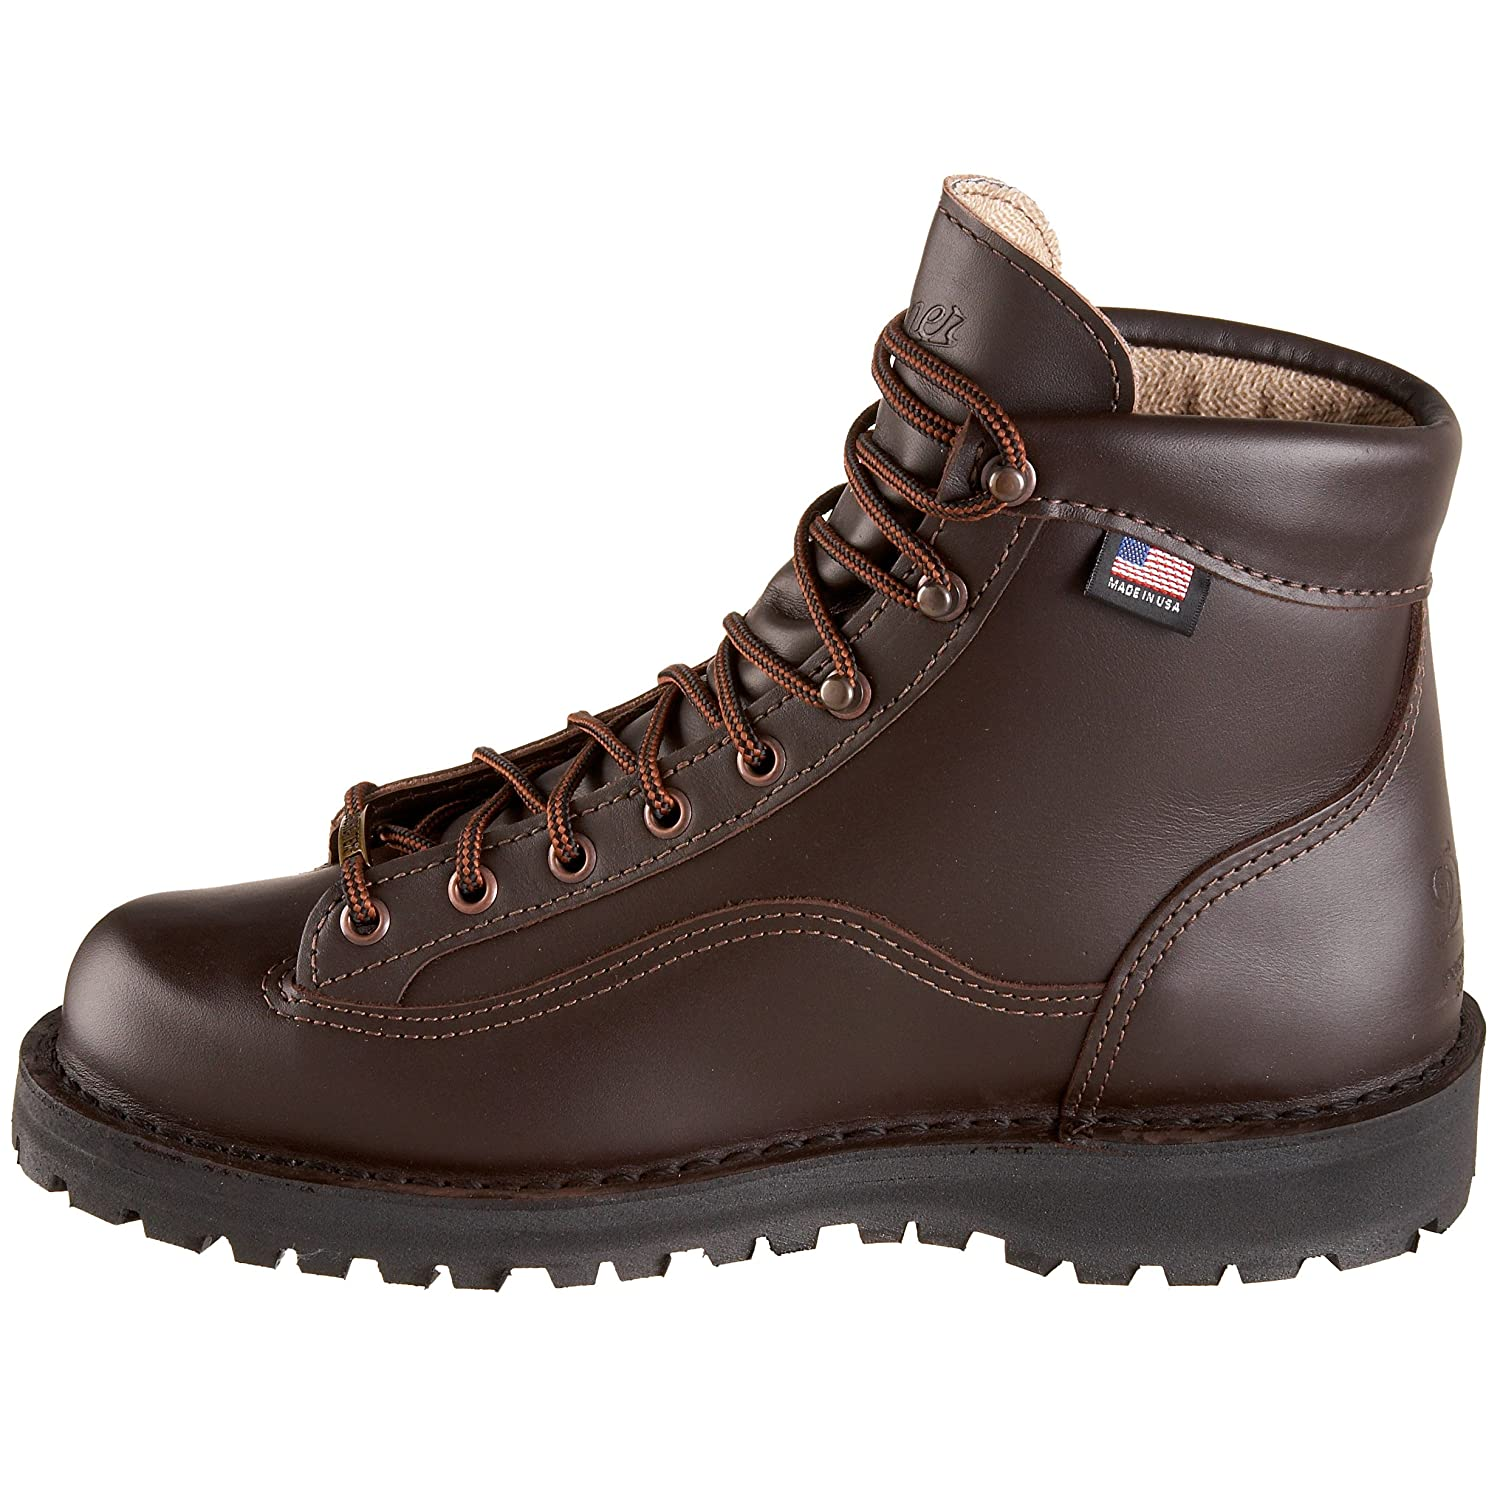 Danner Women's B001DTB5F6 Explorer W Outdoor Boot B001DTB5F6 Women's 6 B(M) US|Brown f1b30f